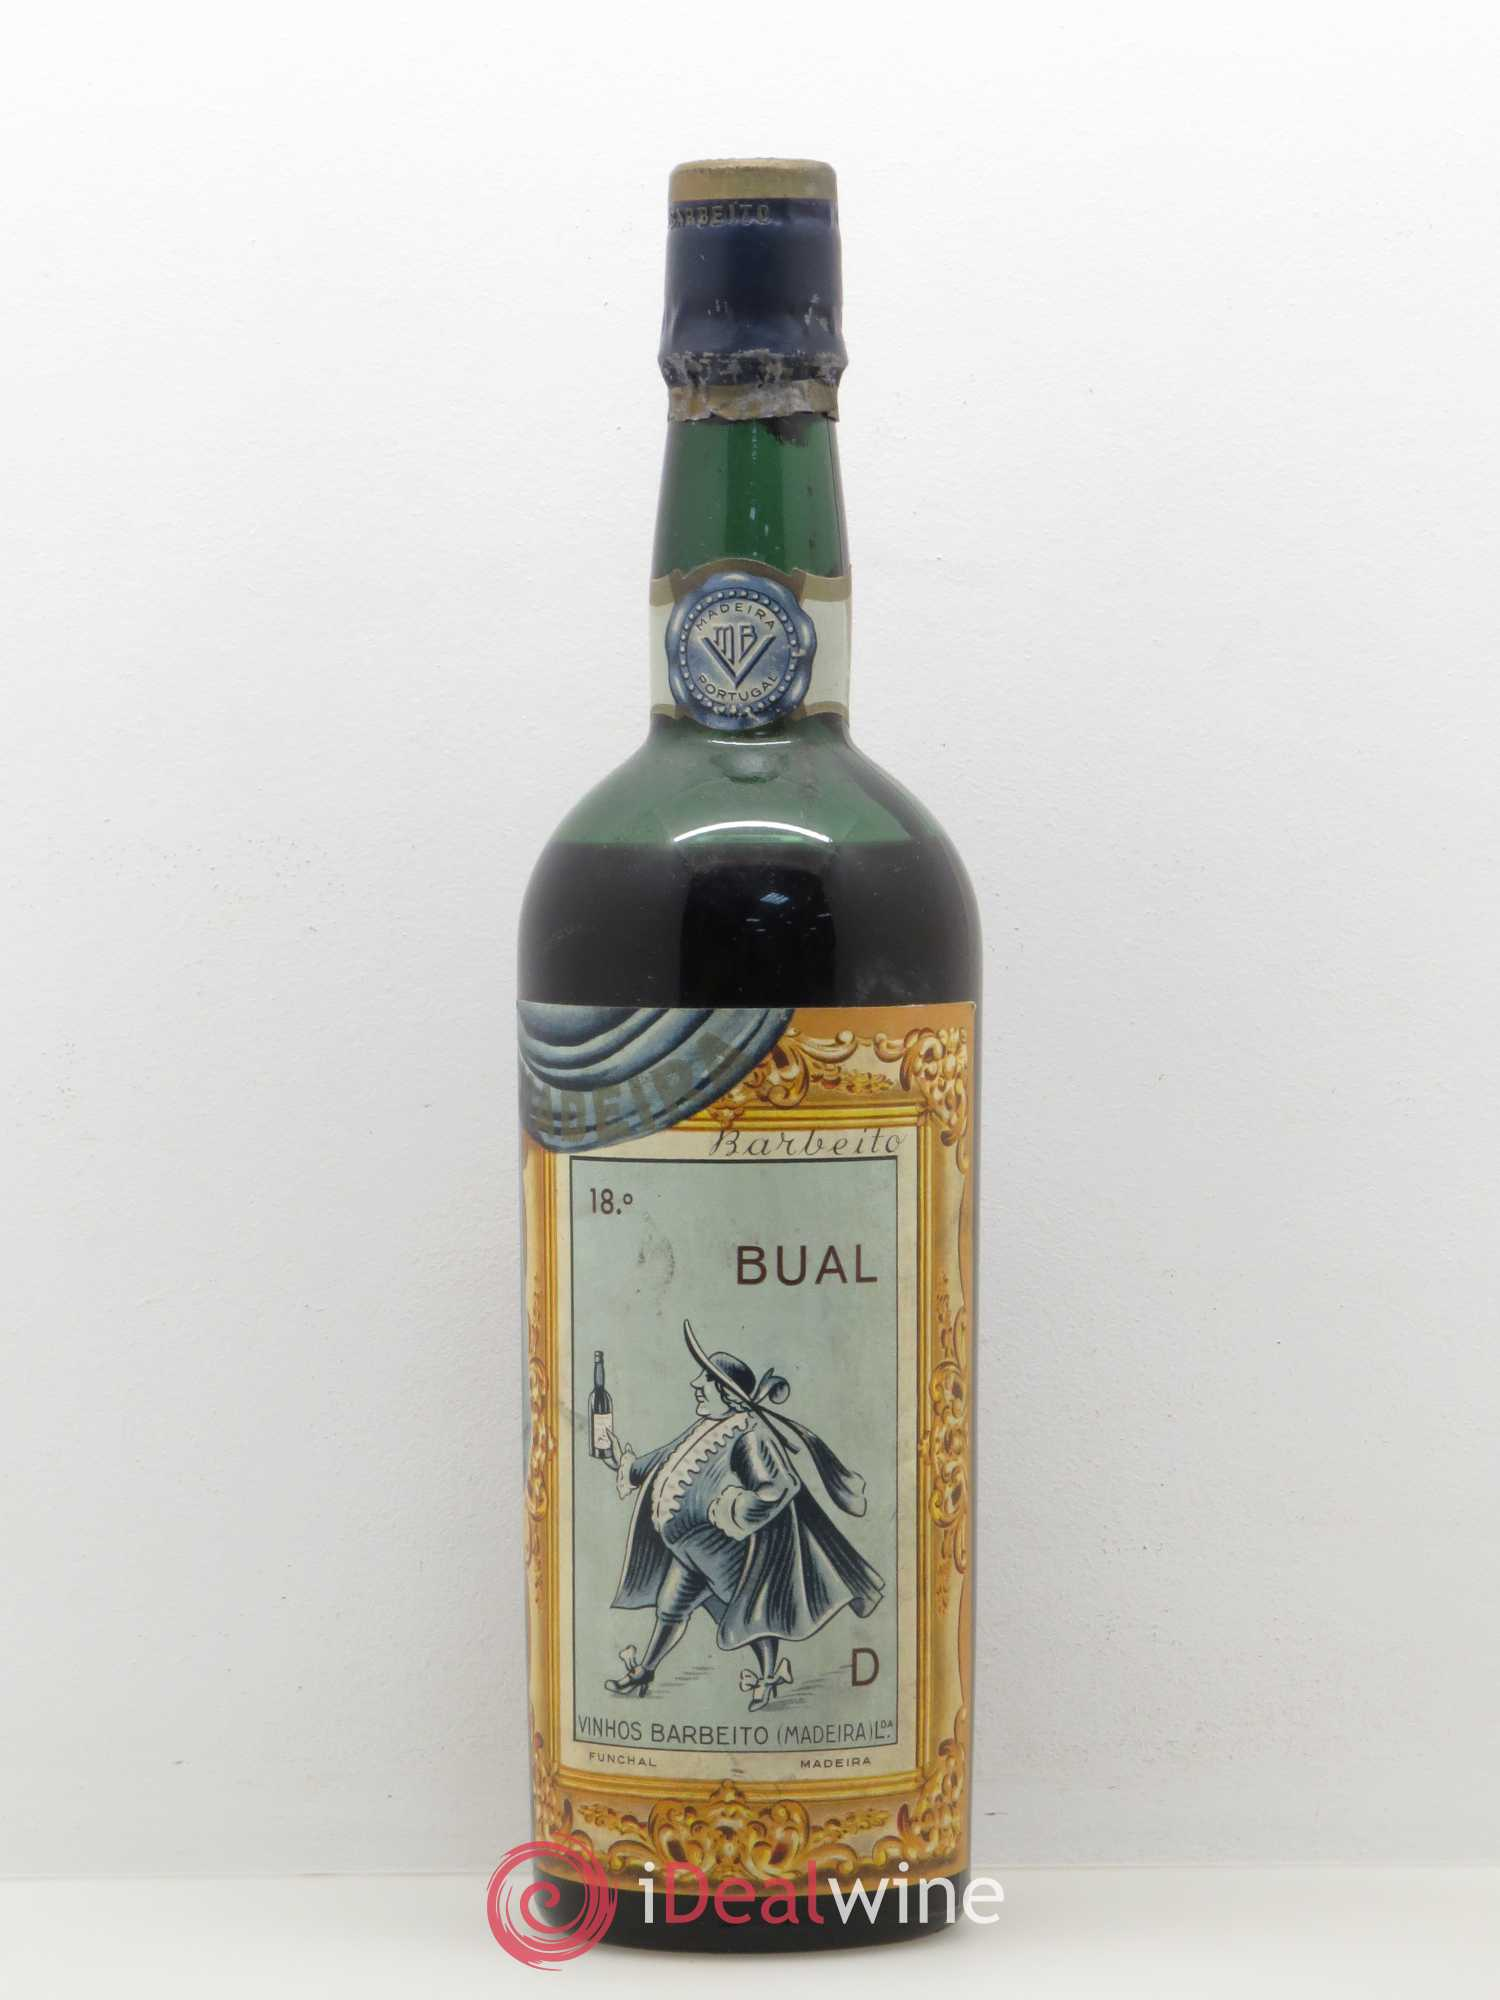 Portugal Madeira Barbeito Bual 1934 - Lot of 1 Bottle